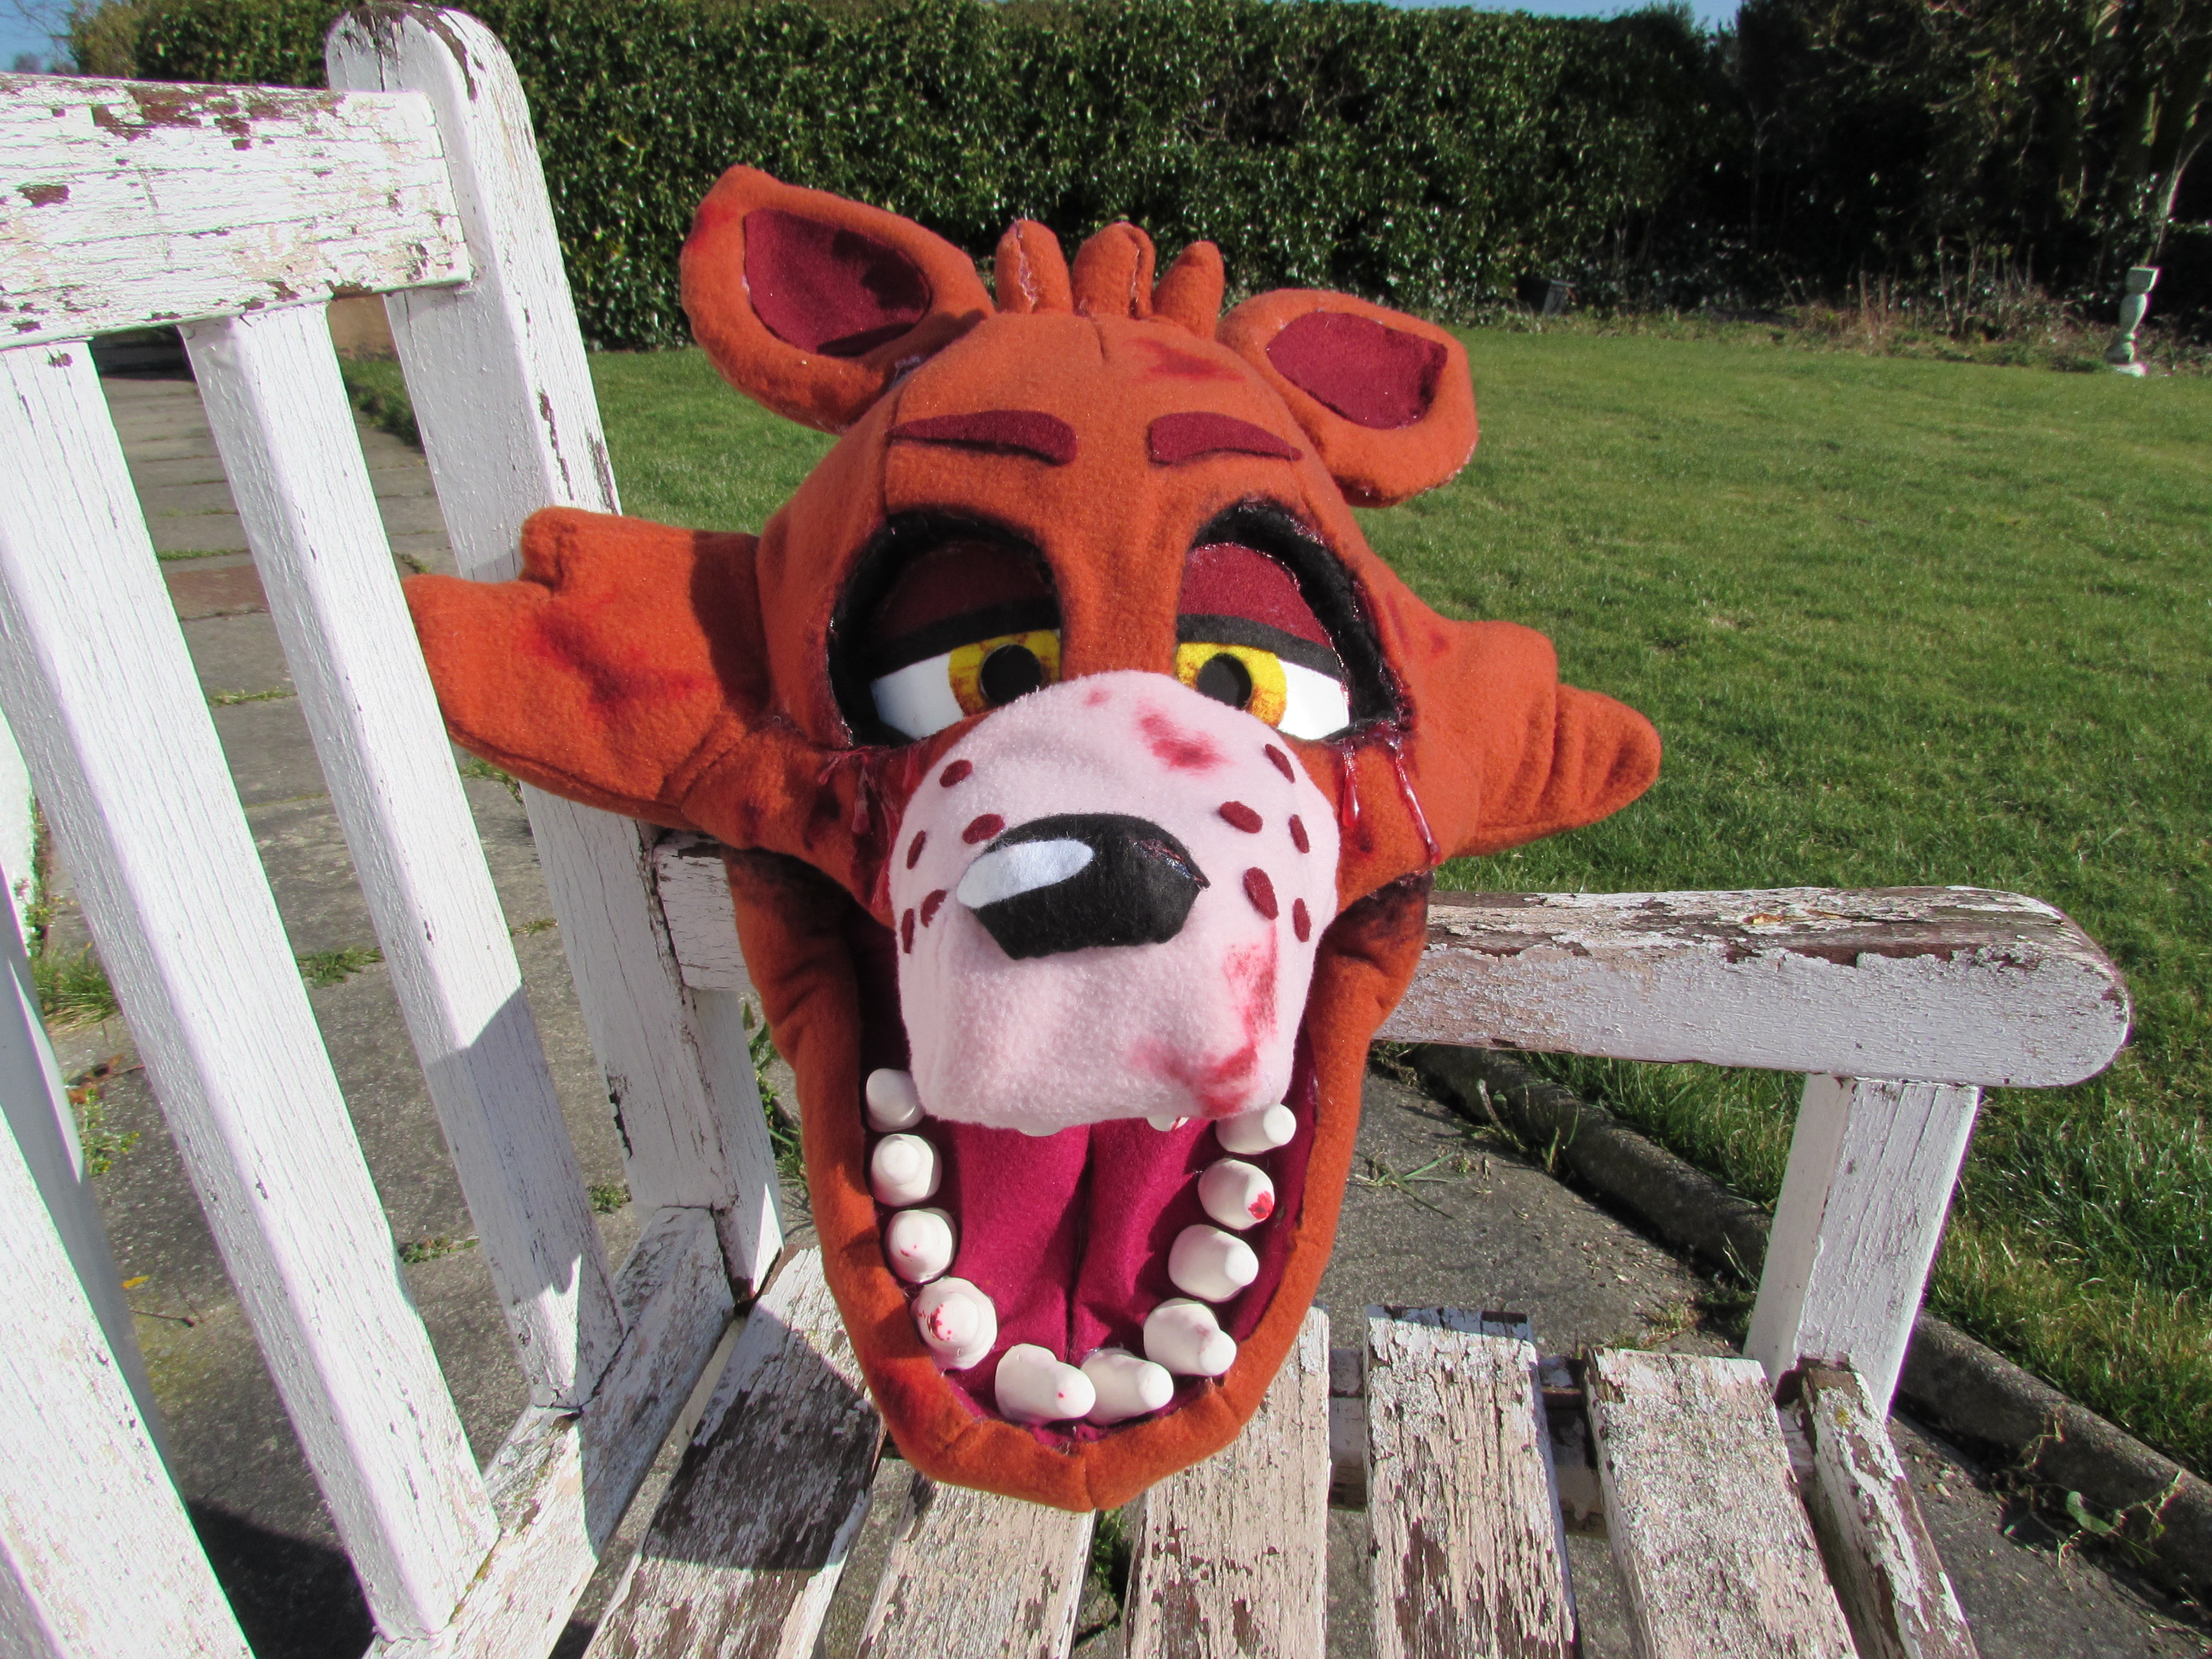 Fnaf masks for sale -  Thisaccountisdead462 Foxy Mask Update Minus Eyepatch By Thisaccountisdead462